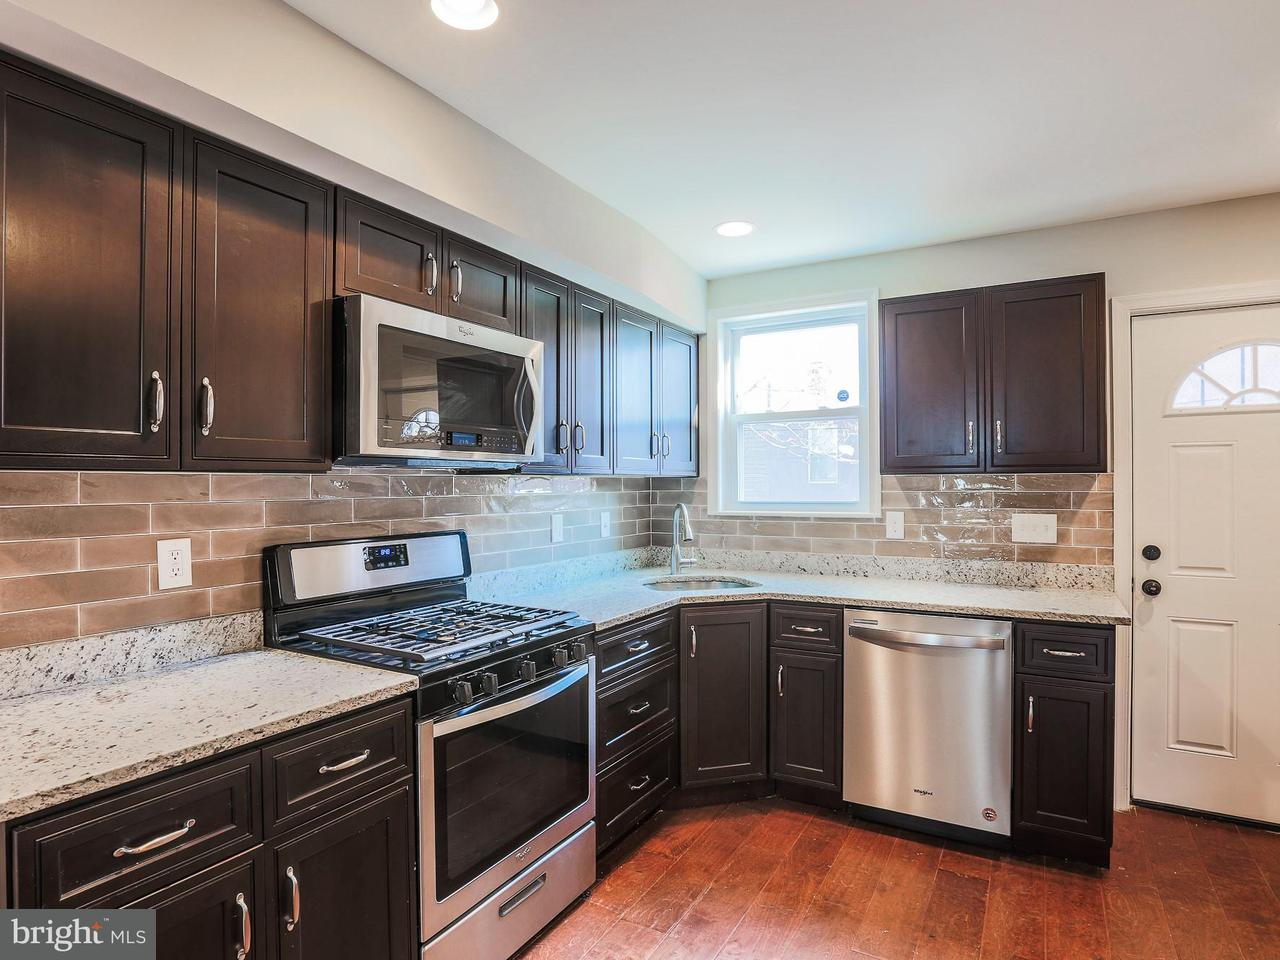 Single Family for Sale at 1205 Bond St Baltimore, Maryland 21213 United States